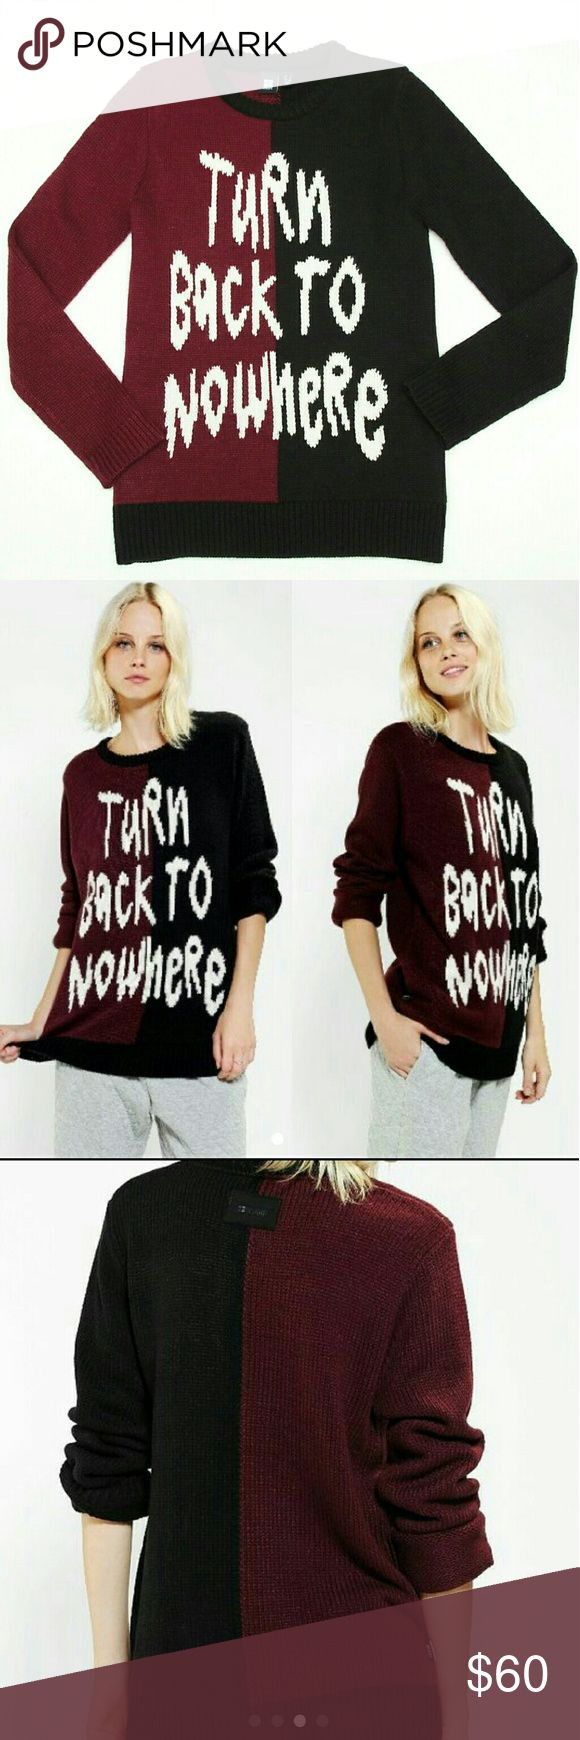 """FINAL Turn Back Urban Outfitters Sweater """"Turn Back to Nowhere"""" Urban Outfitters exclusive sweater by Insight Size XS $110 retail, sold out Excellent lightly preowned condition  Tags sweater flatlay outfit fashion color block trendy cozy fall winter urban outfitters uo tumblr unique cool pop punk top 21 pilots twenty one pilots 1975 the1975 zara topshop jumper pullover graphics existential existentialism quote burgundy black wildfox dollskill Urban Outfitters Sweaters Crew & Scoop Necks"""